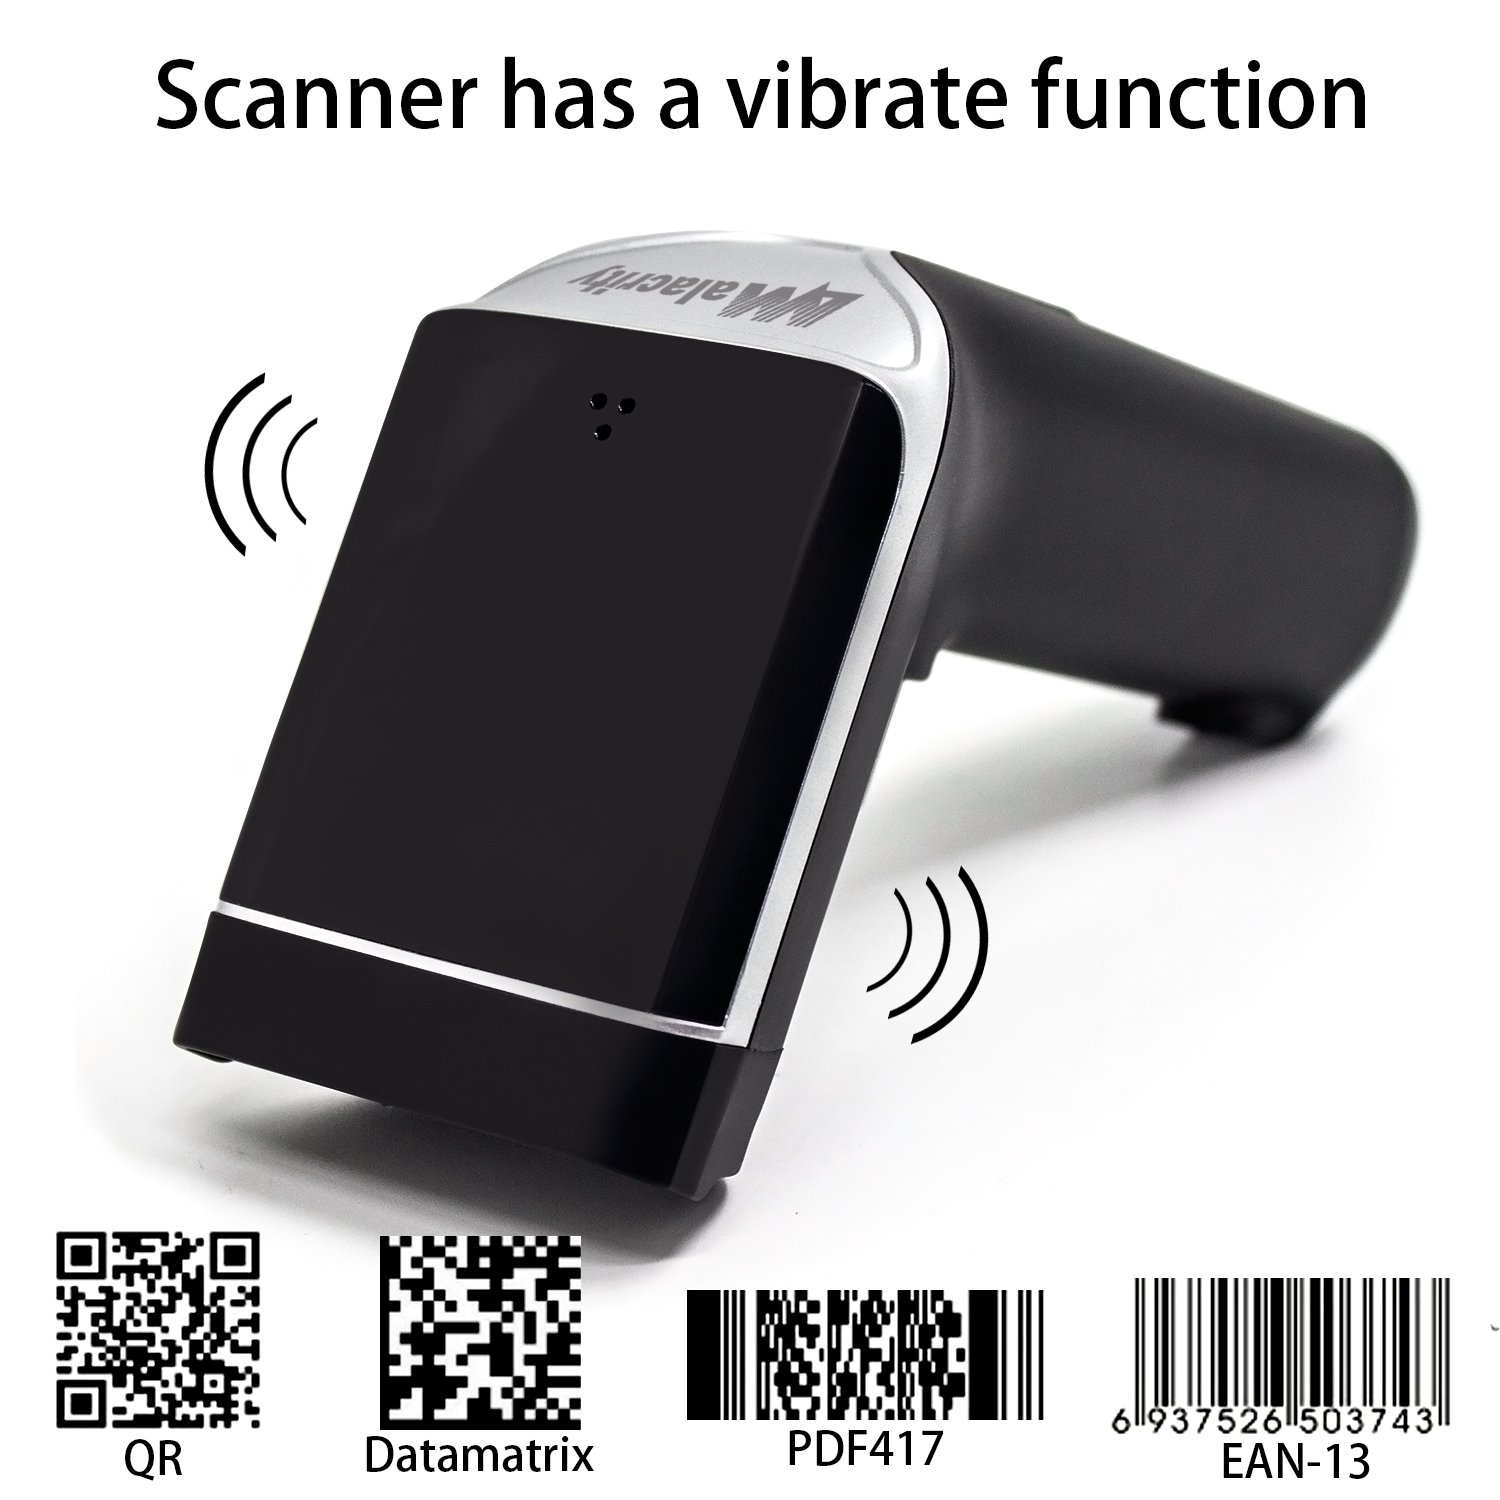 2D Barcode Scanner,Alacrity Wireless USB Portable Bar Code Scanner with Vibration Alert 32-bit Processor - Compatible with Windows, Mac OS, Android, iOS